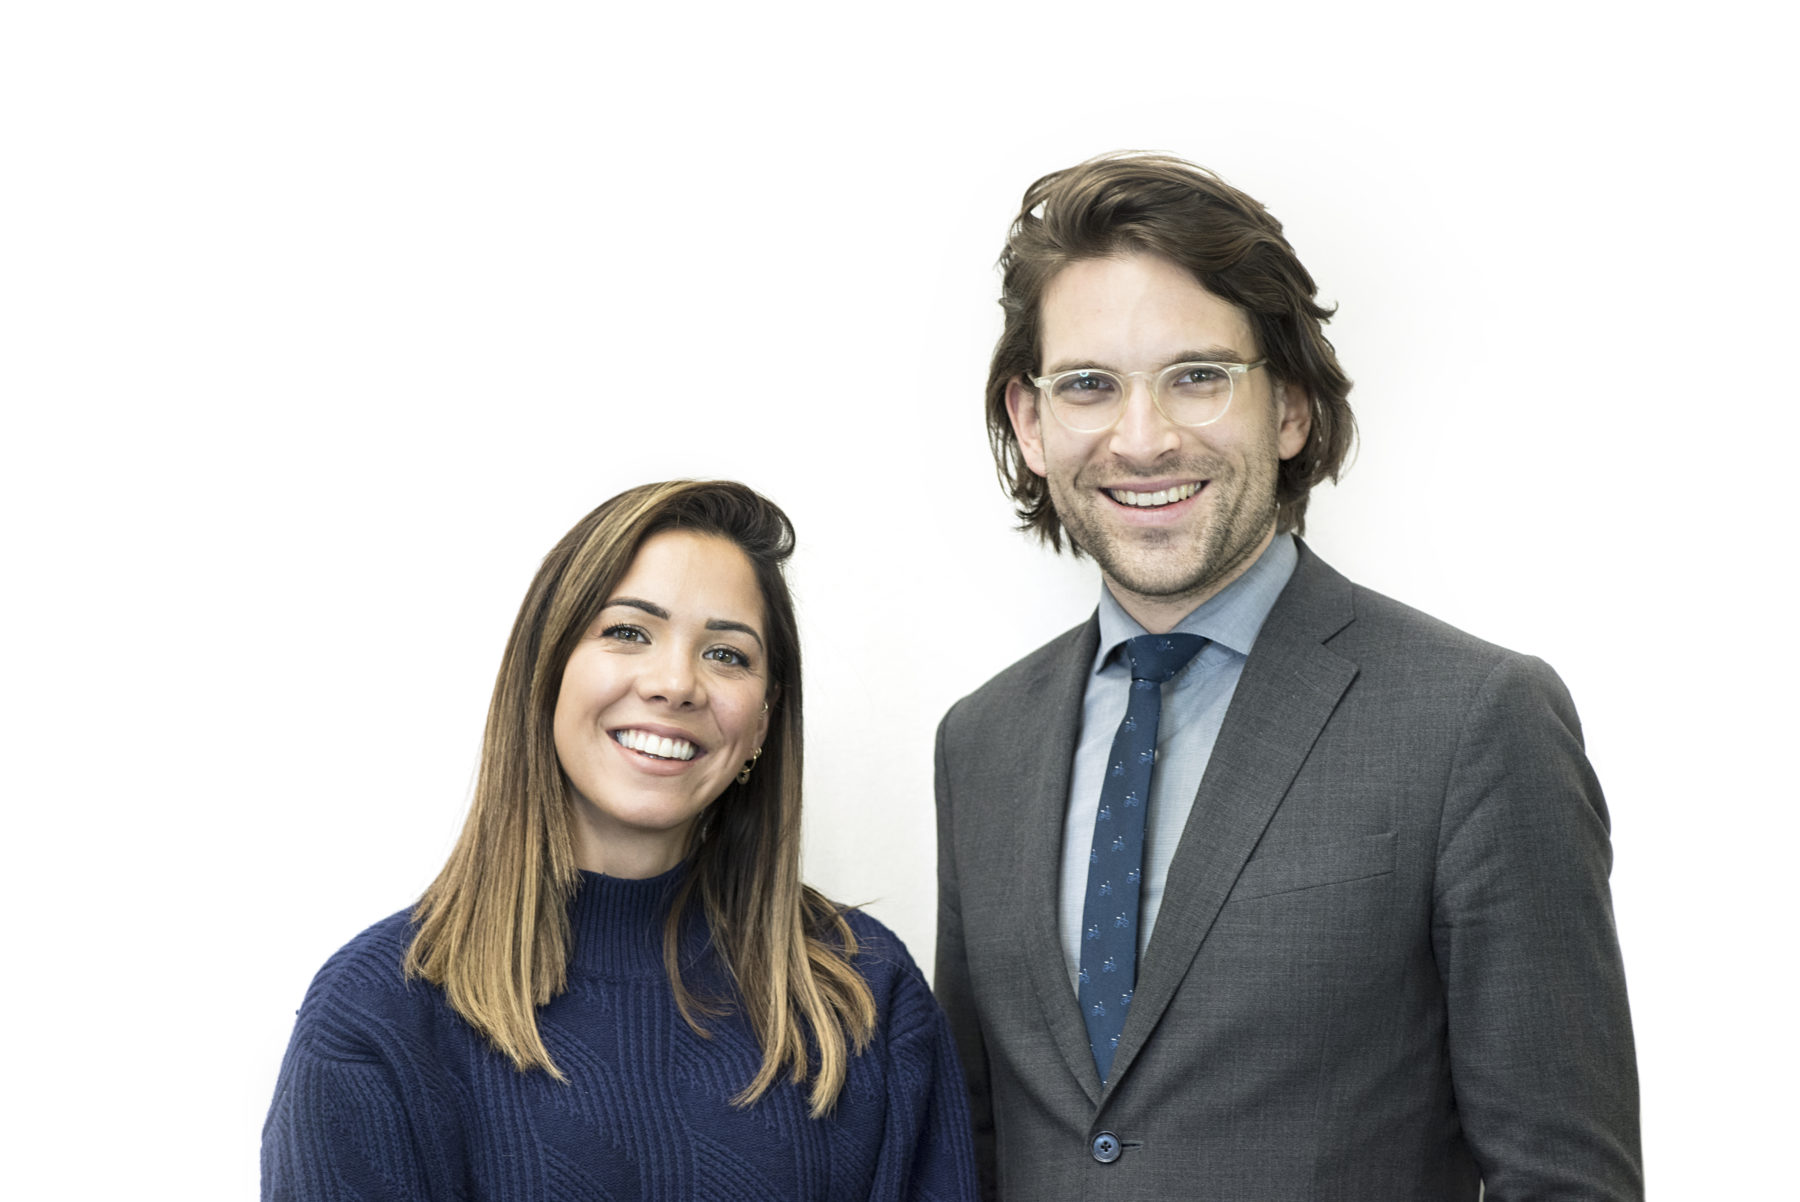 Podcast hosts Dr. Hazel Wallace and Dr. Sandro Demaio